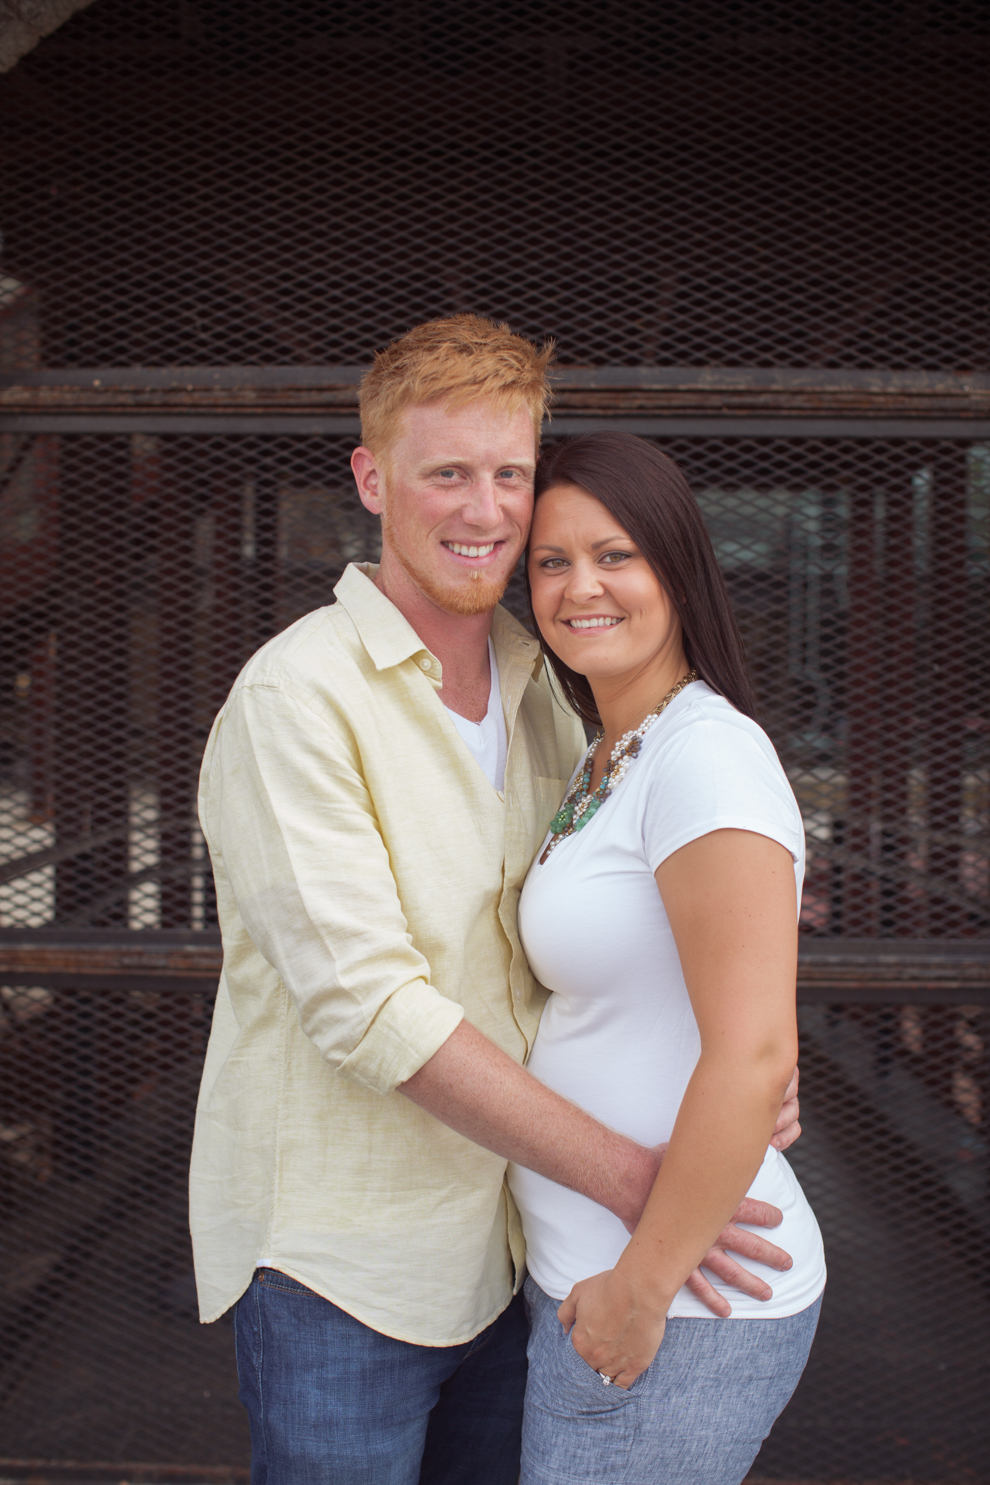 071413_Kim_Travis_Engagement_0008-2